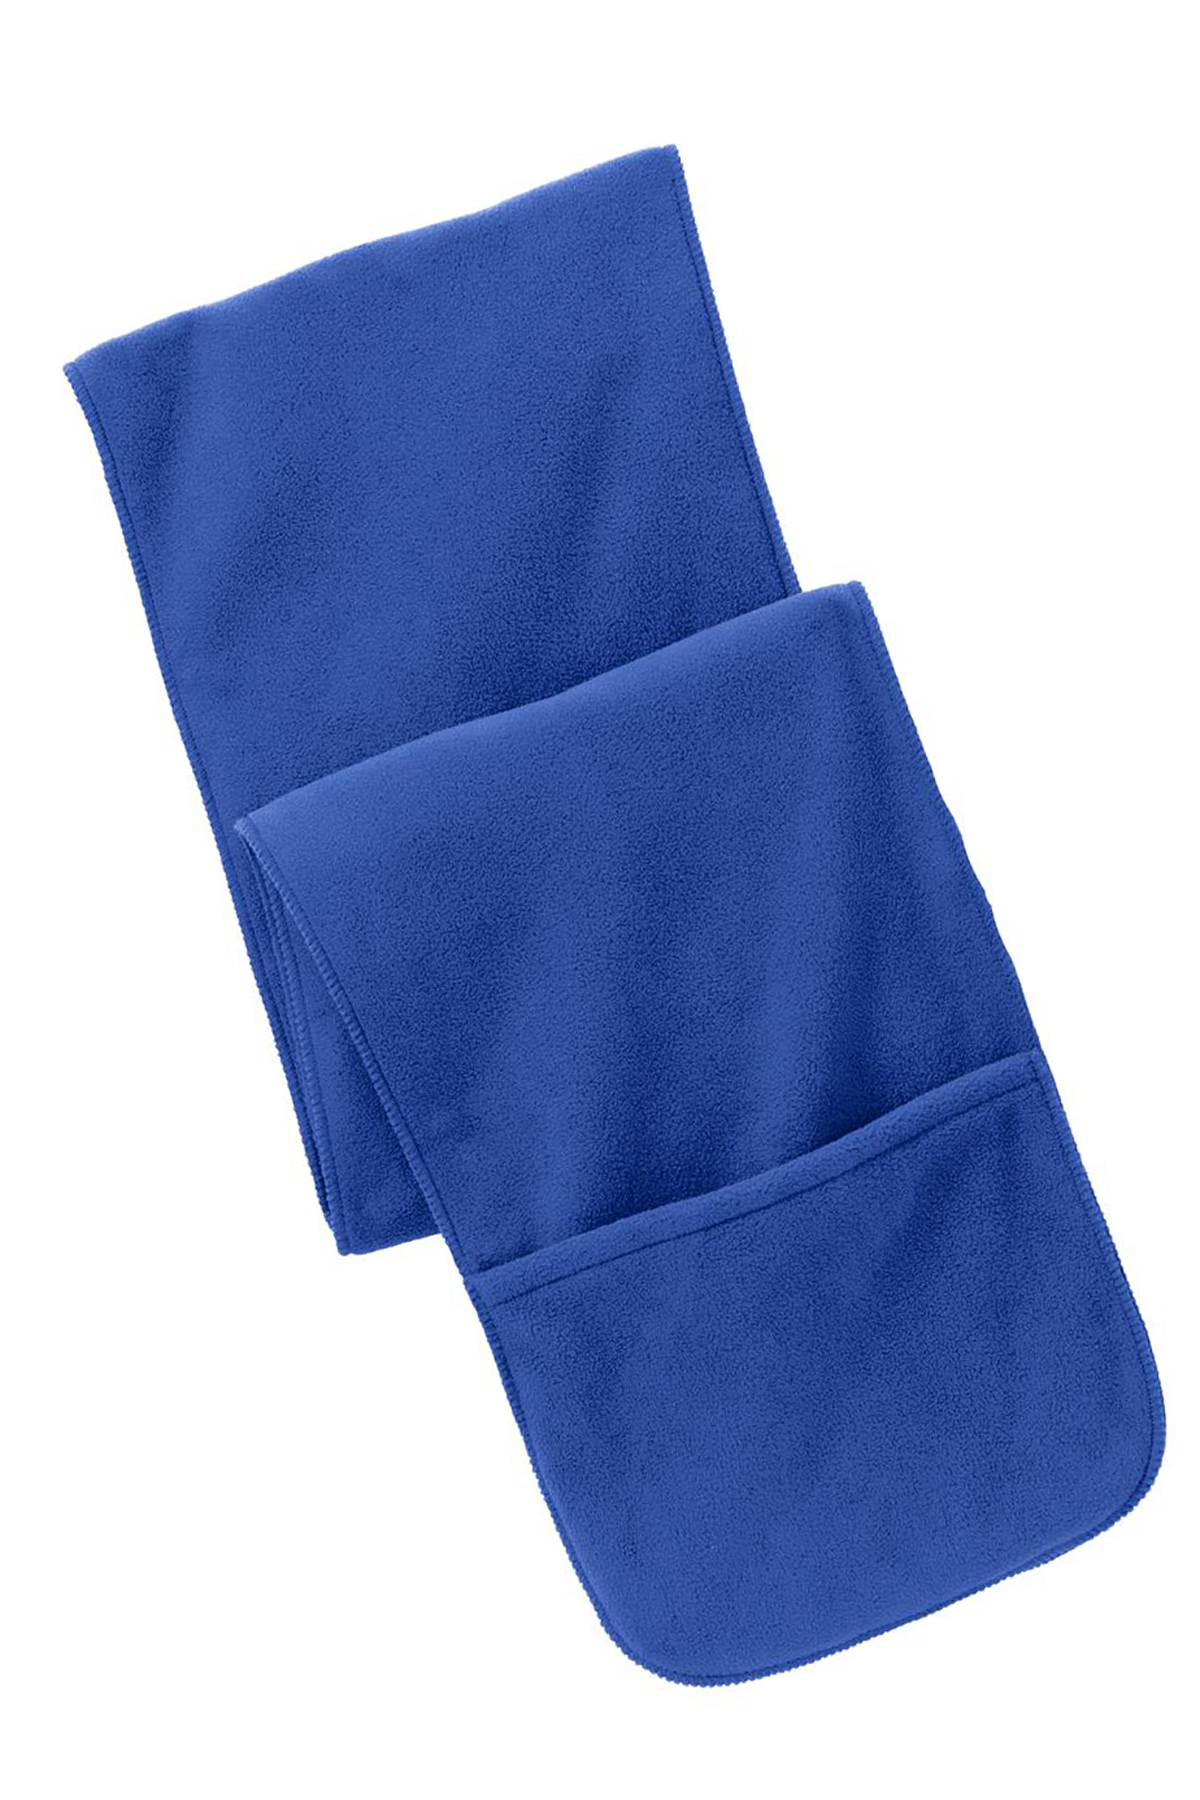 Accessories-Scarves-Gloves-1